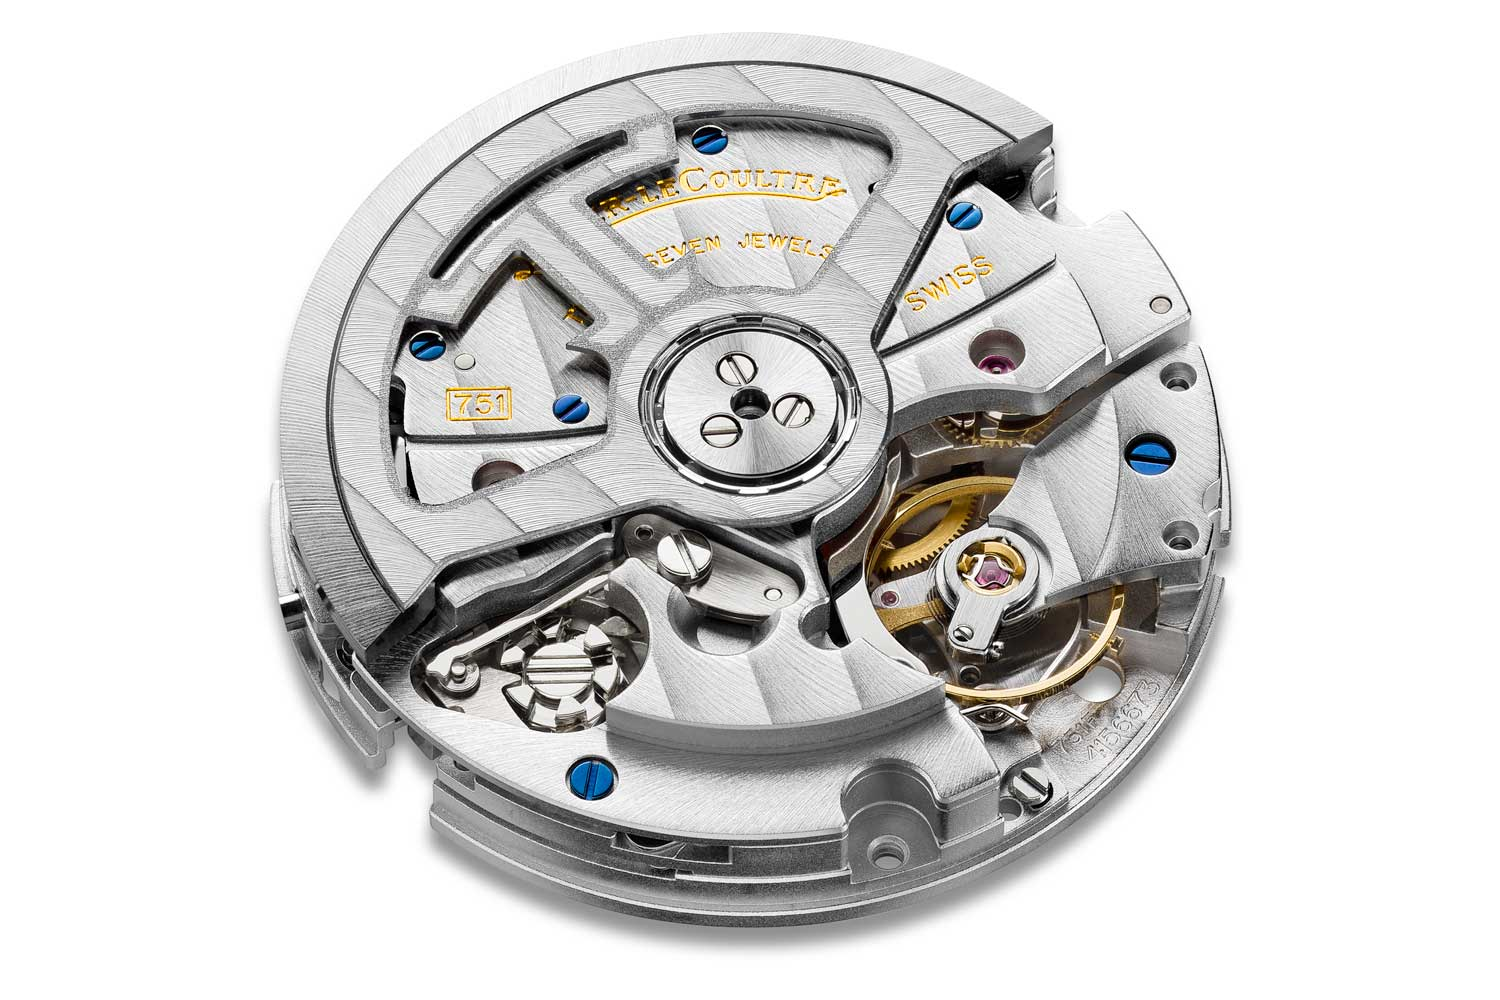 The Jaeger-LeCoultre self-winding chronograph caliber 751 was introduced in 2005. This column-wheel controlled, vertical clutch design chronograph was the brand's very first automatic chronograph.